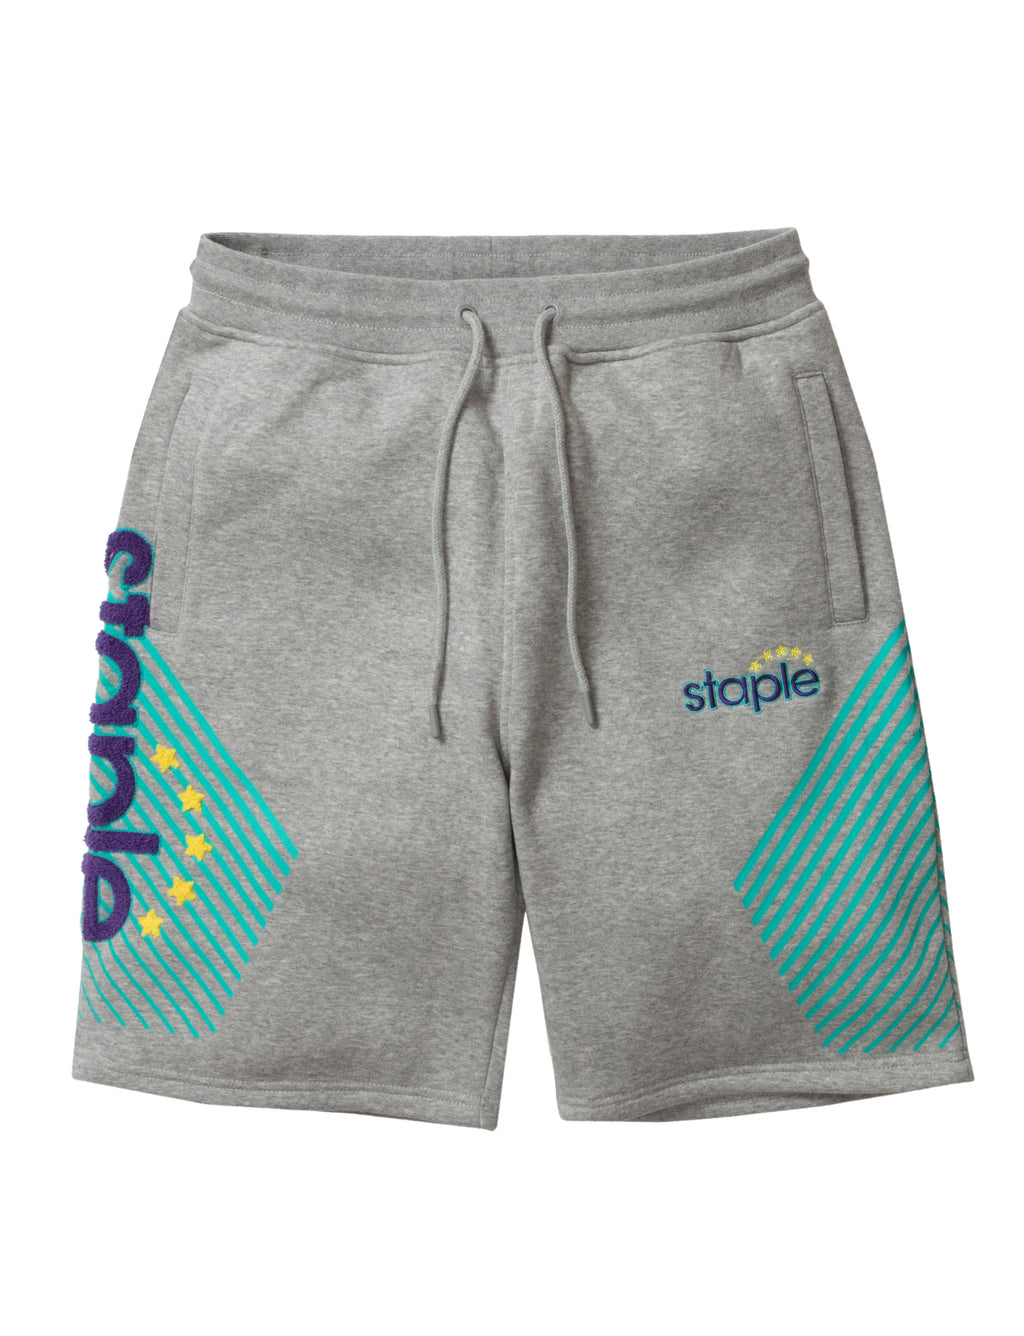 Takeover Logo Sweatshort - Shorts | Staple Pigeon